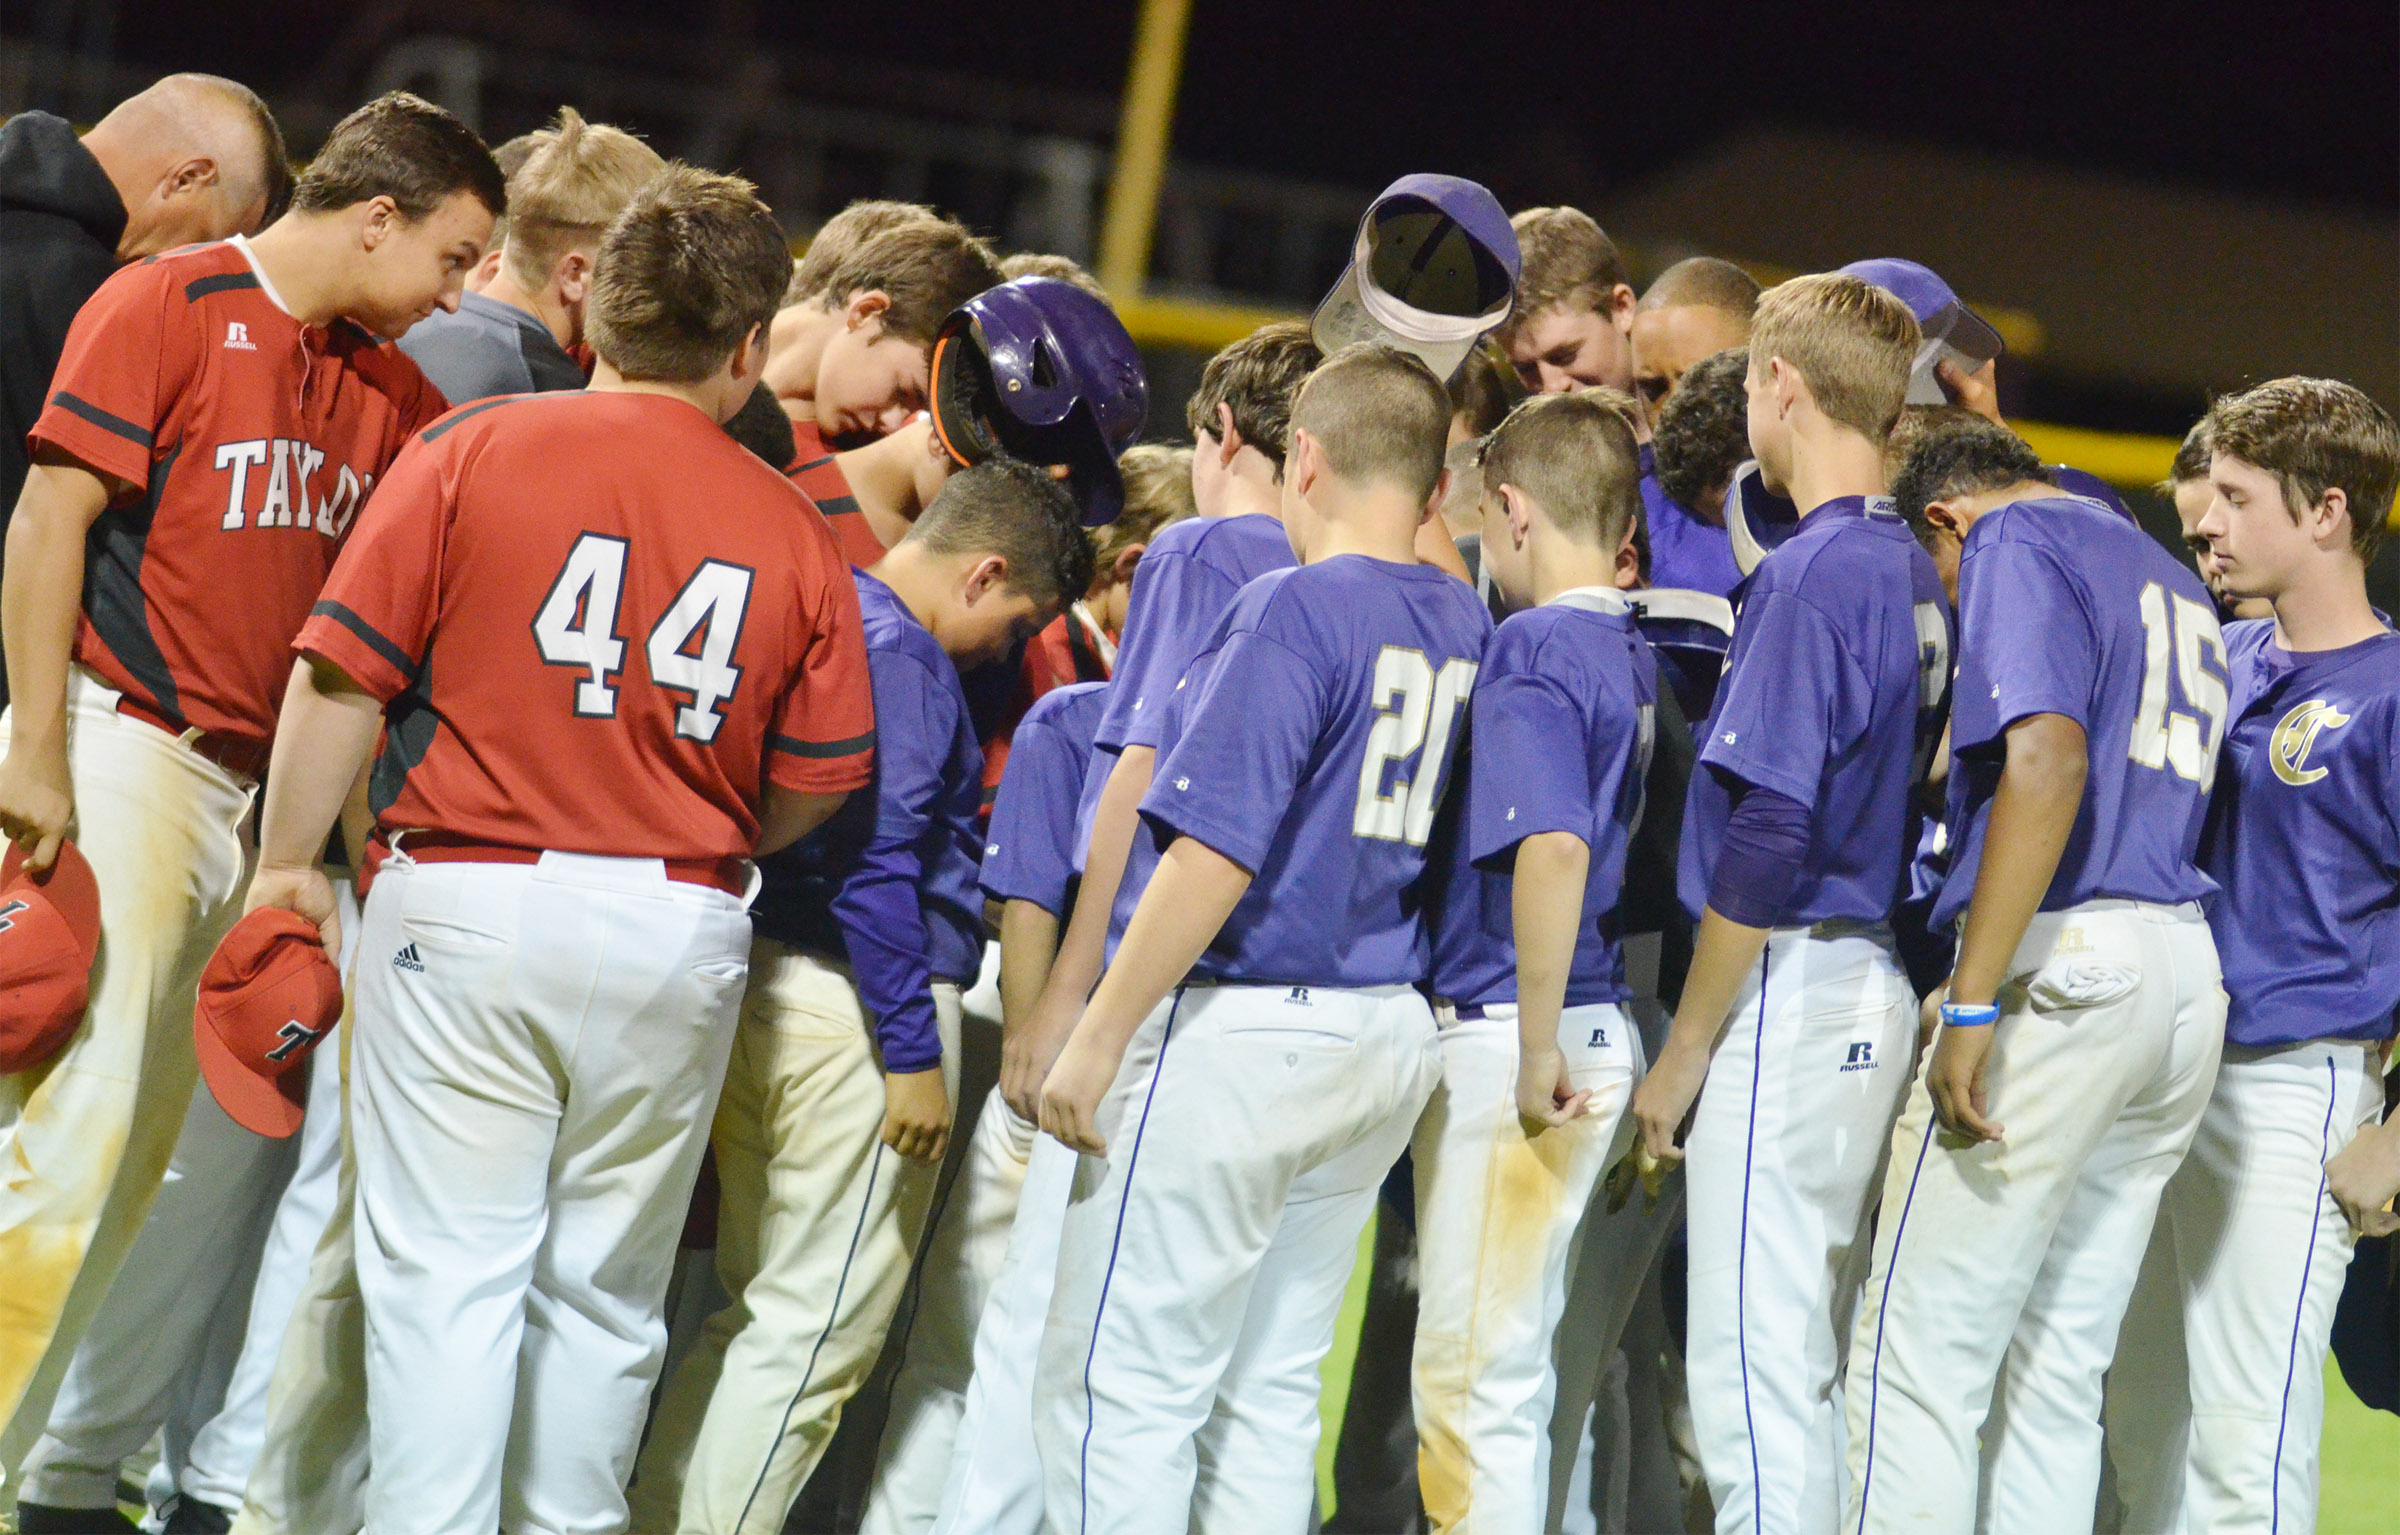 CMS baseball players pray with the Taylor County team after the game.